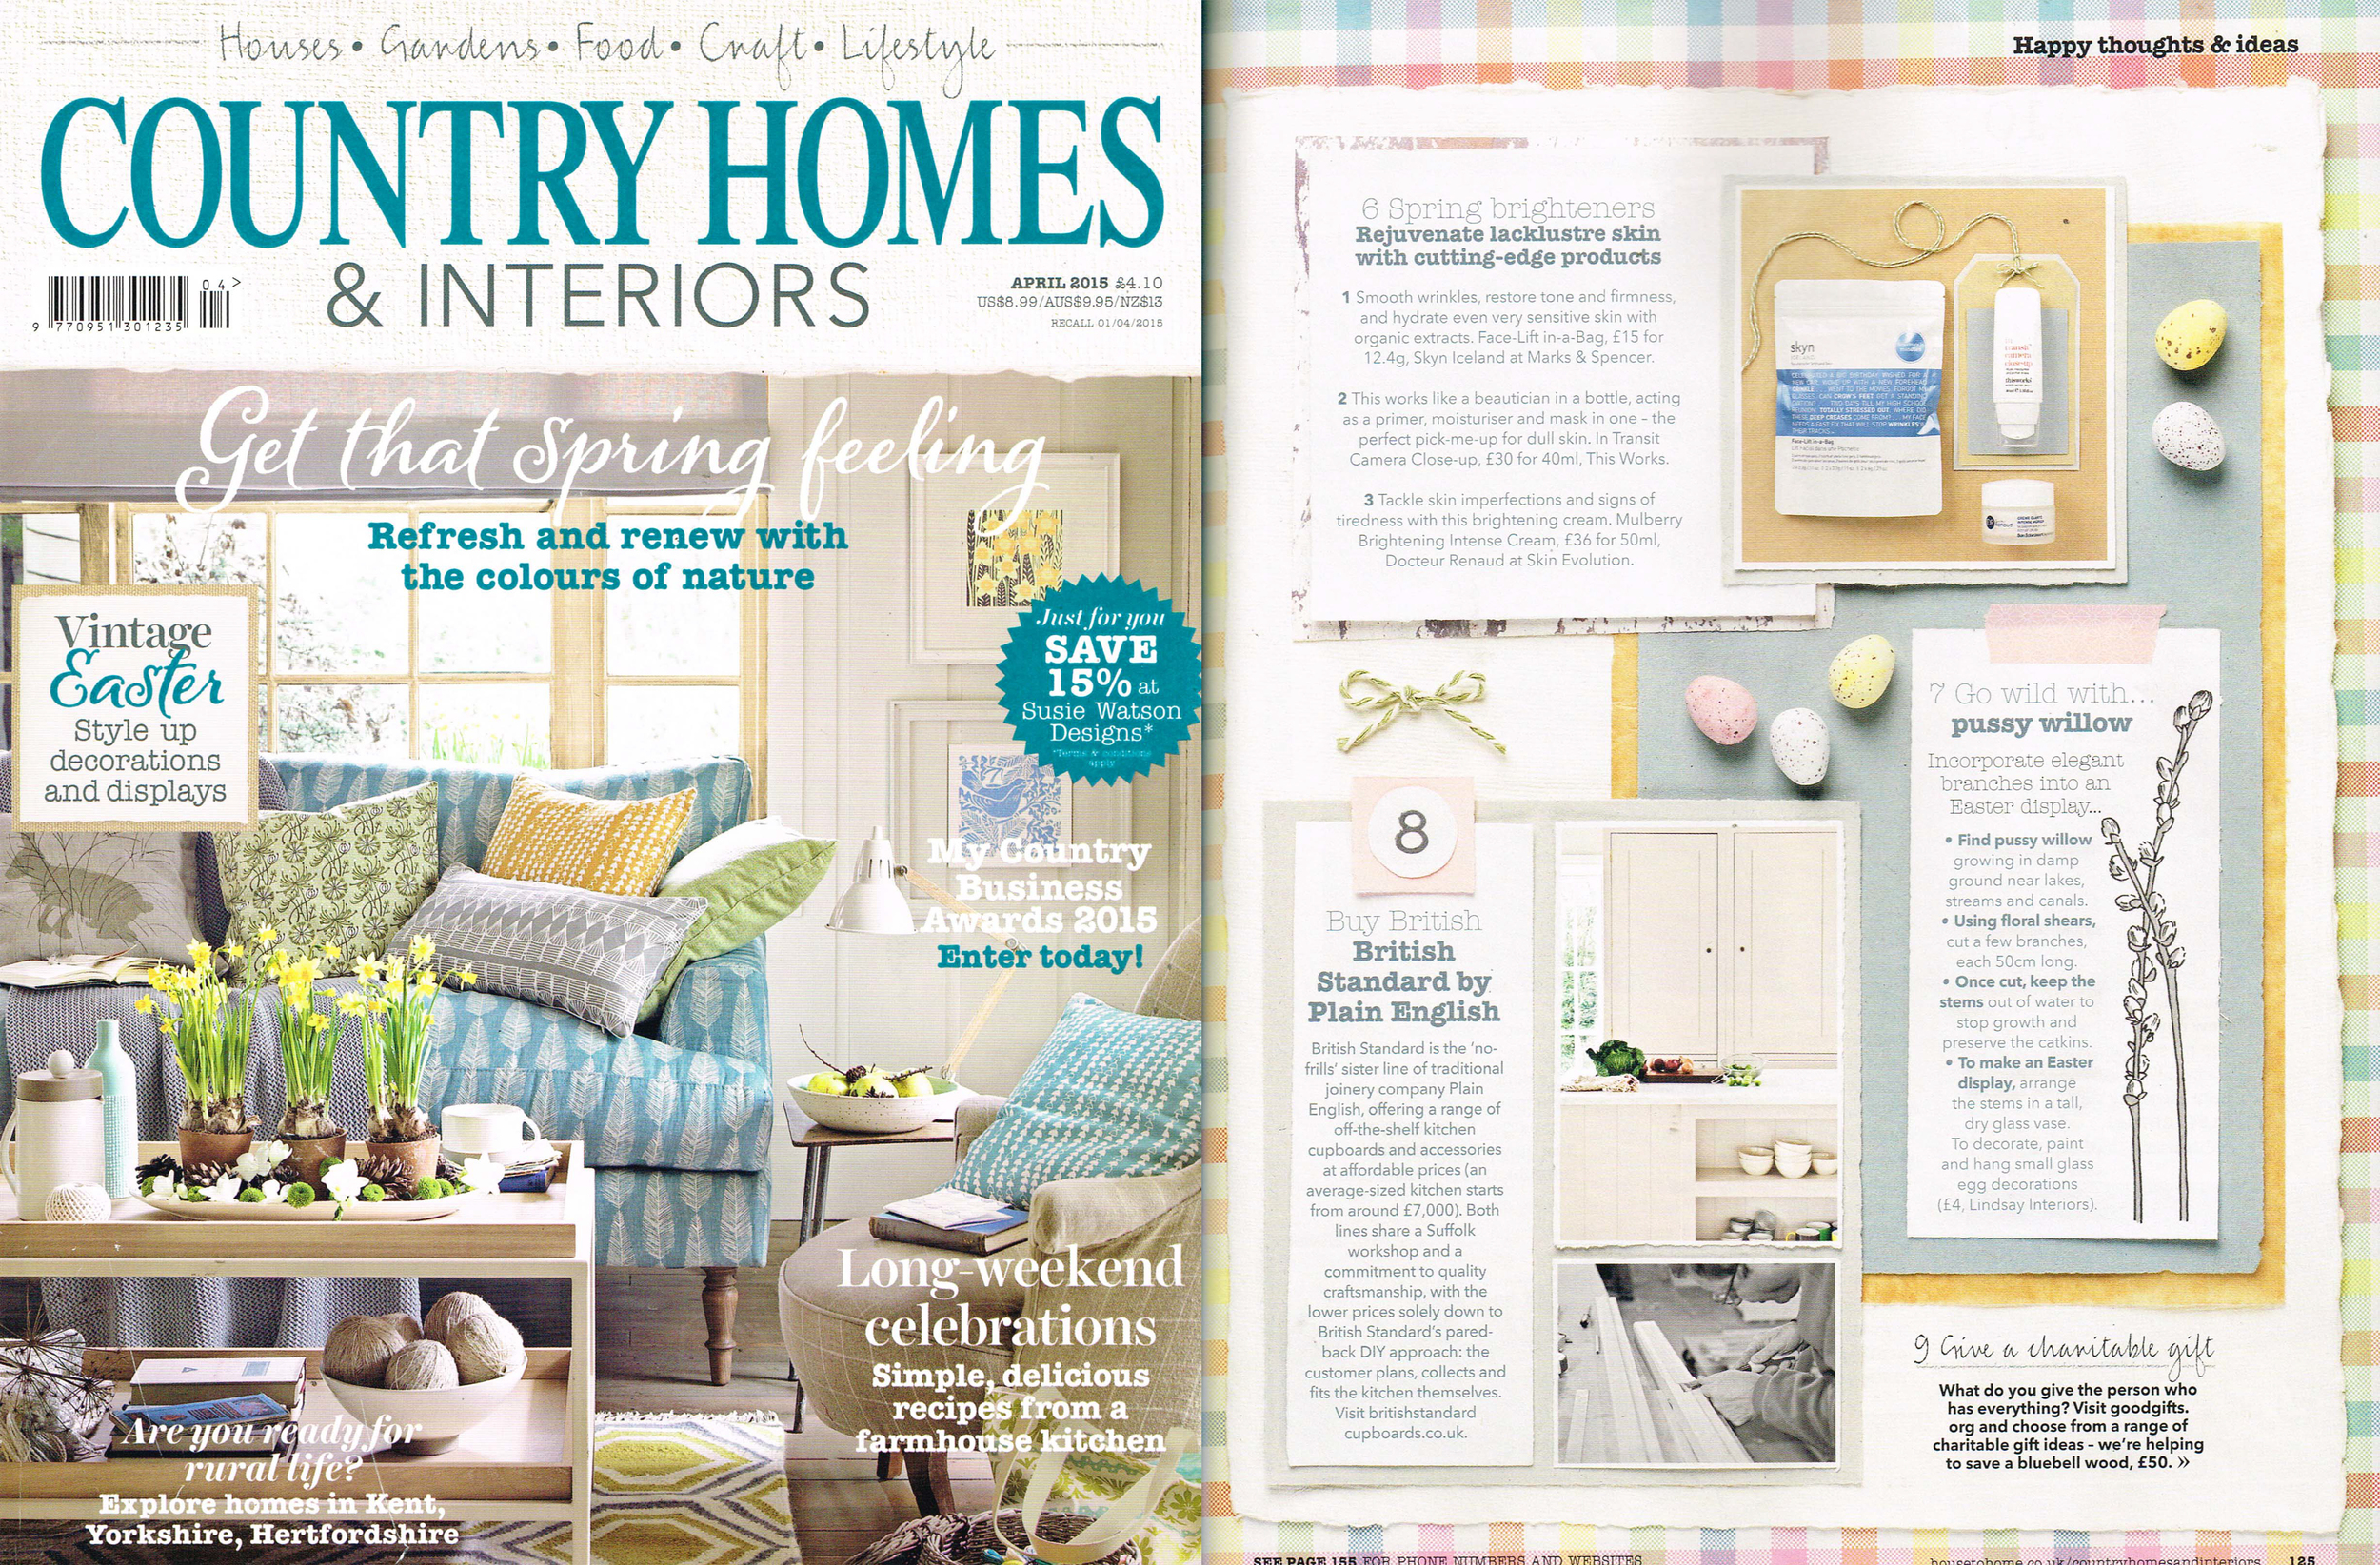 BS_CountryHomes&Interiors_April2015_coverage-1.jpg